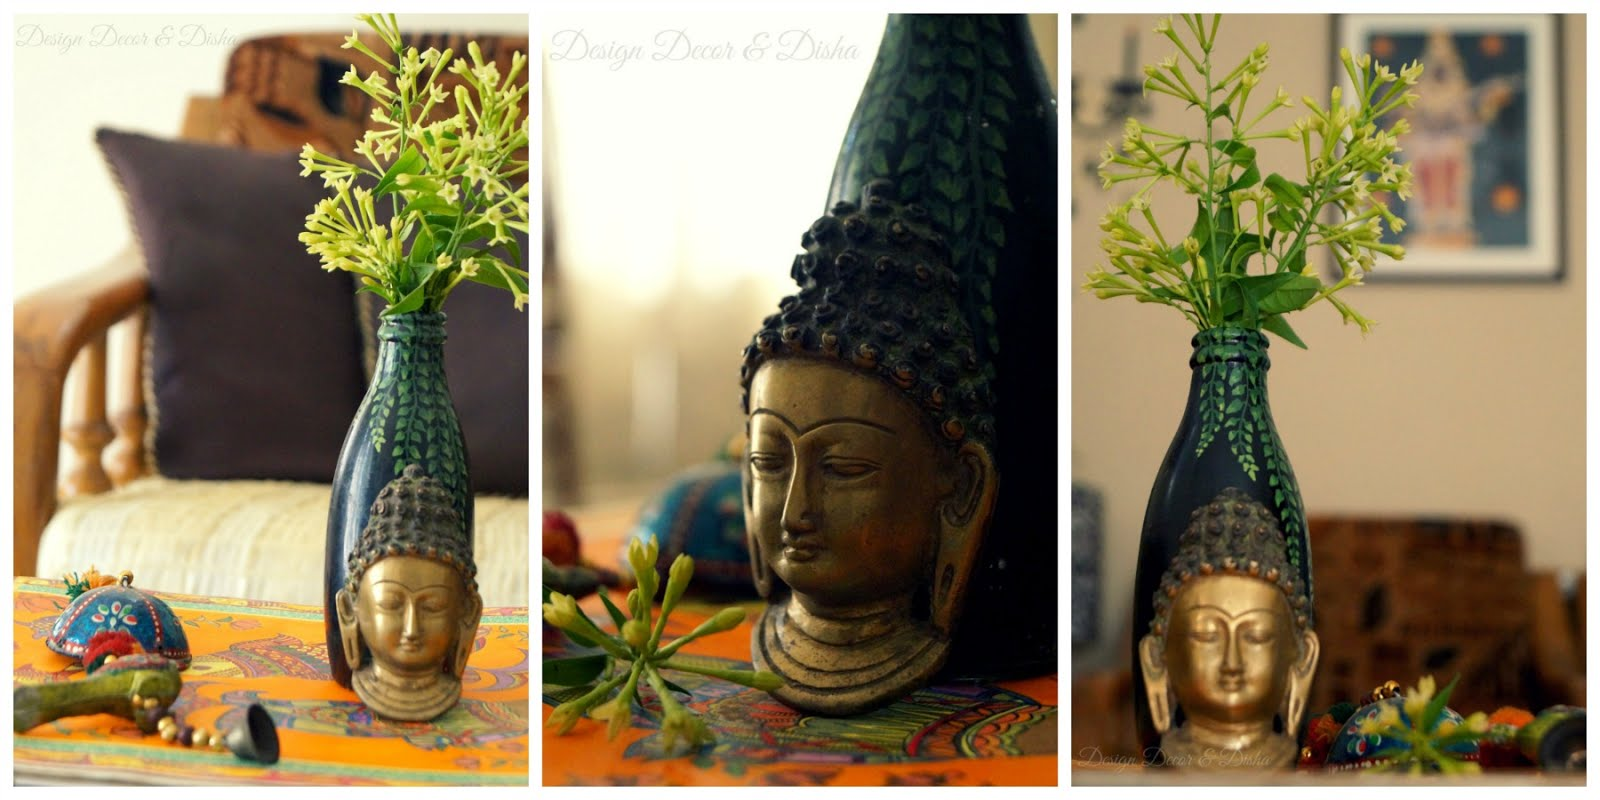 Zen Decor Ideas Design Decor And Disha An Indian Design And Decor Blog